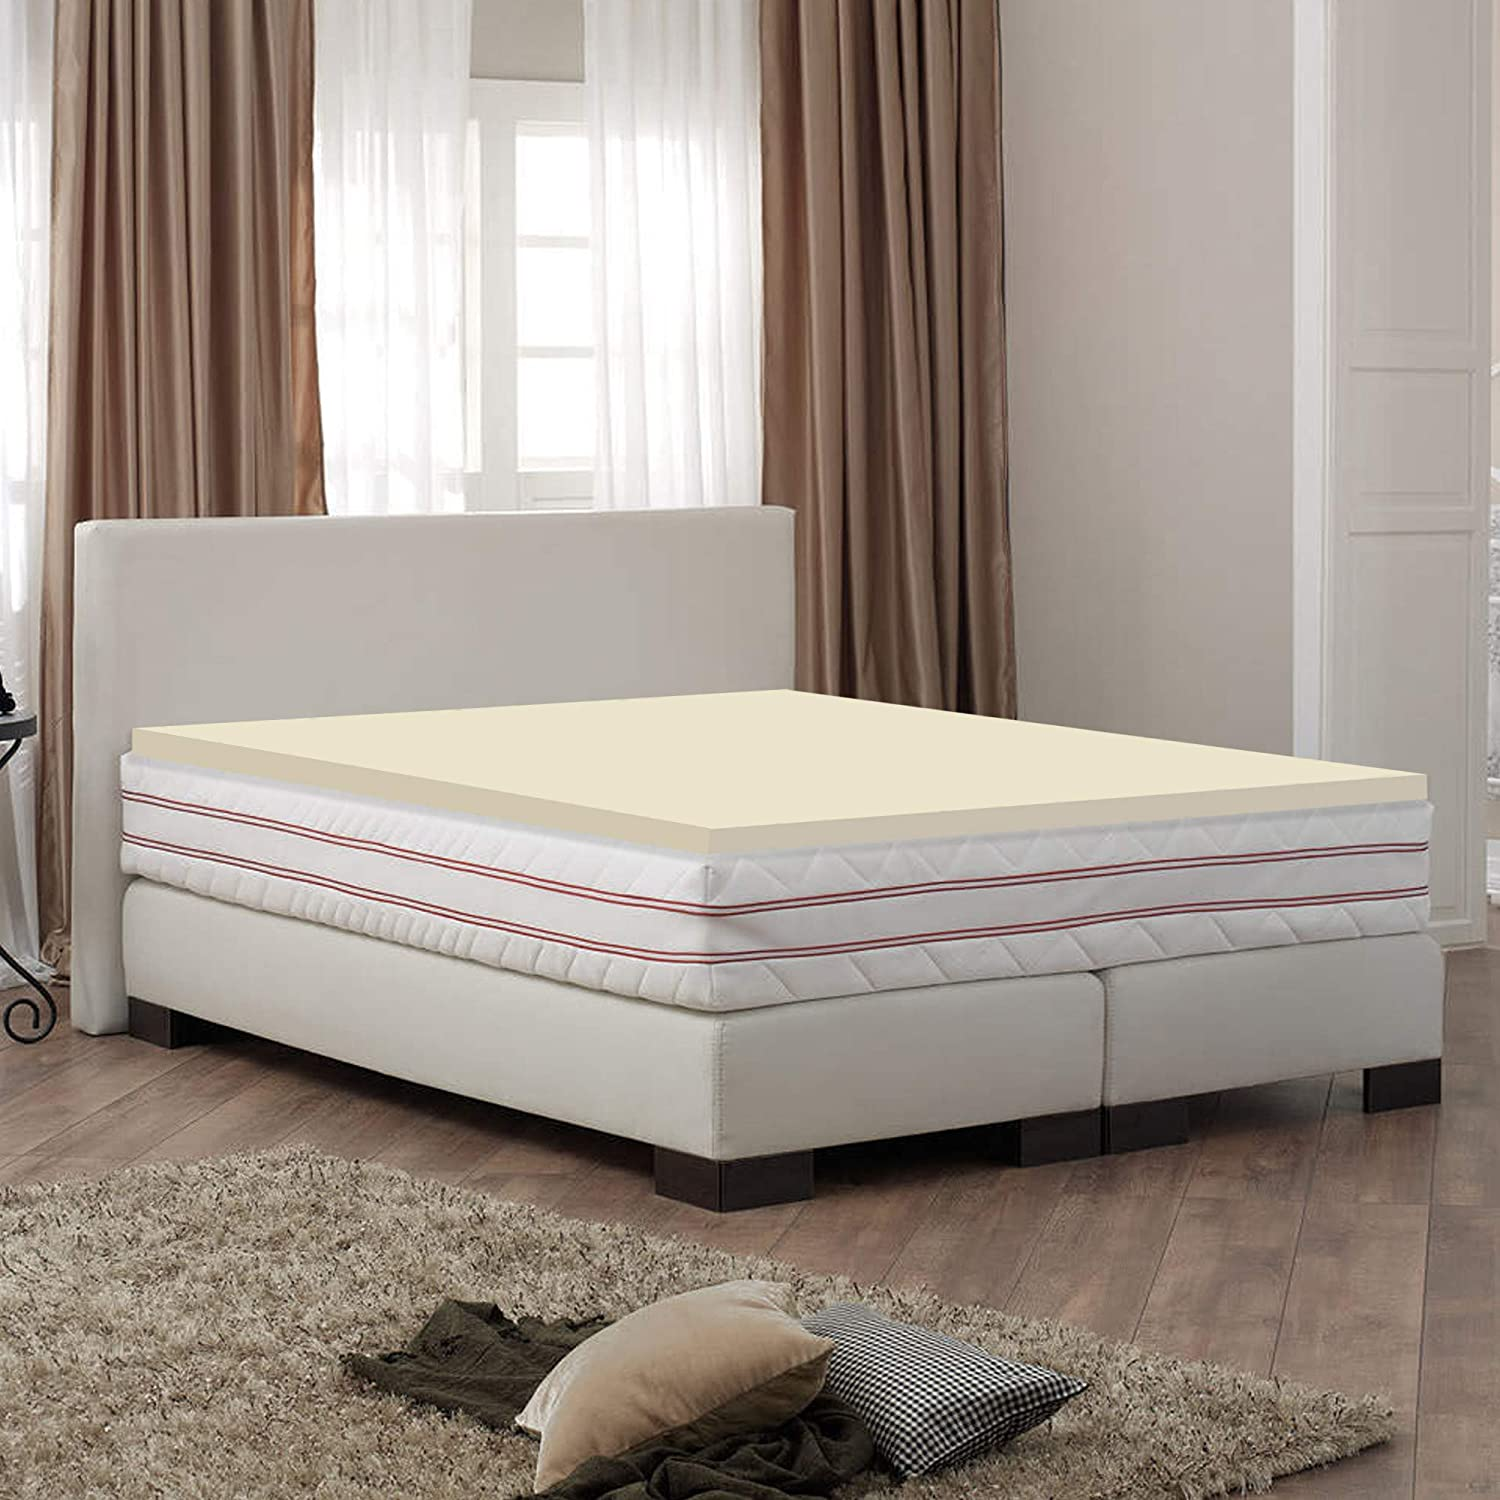 Greaton High Density Foam Topper,Adds Comfort to Mattress, King Size